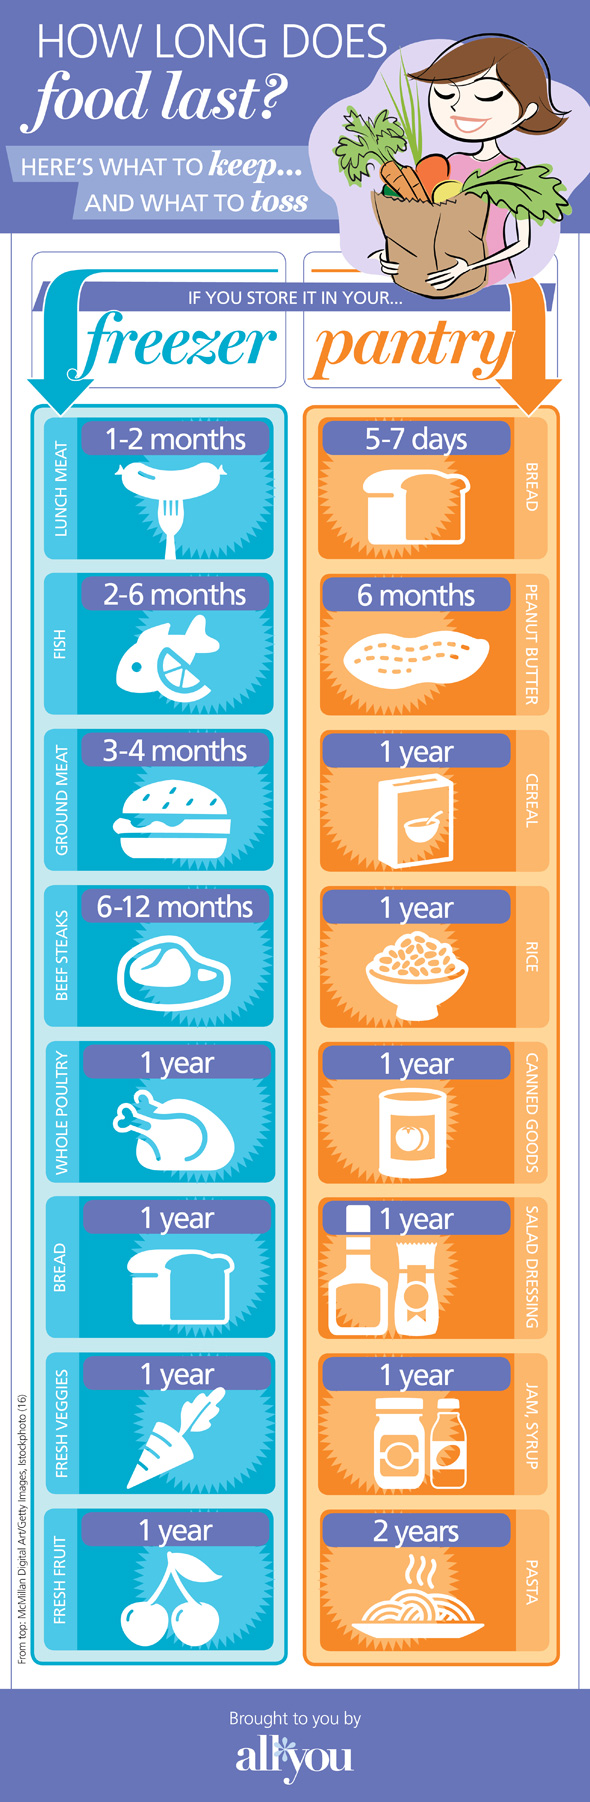 how_long_does_food_last_infographic